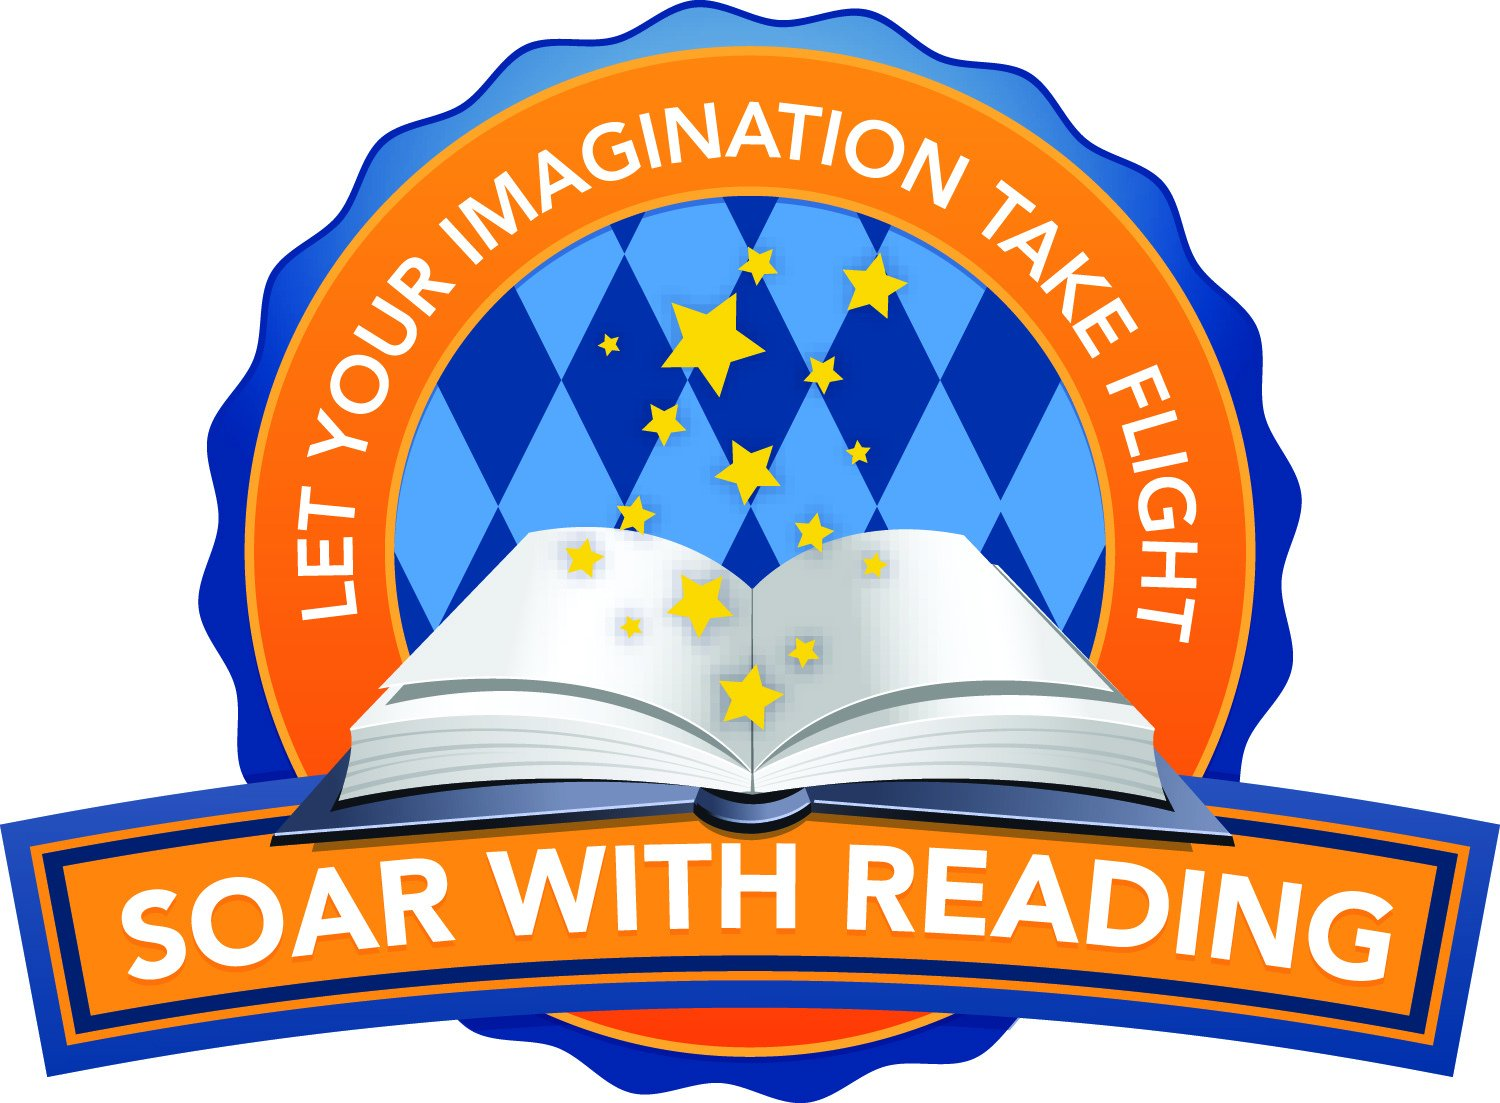 Soar with Reading